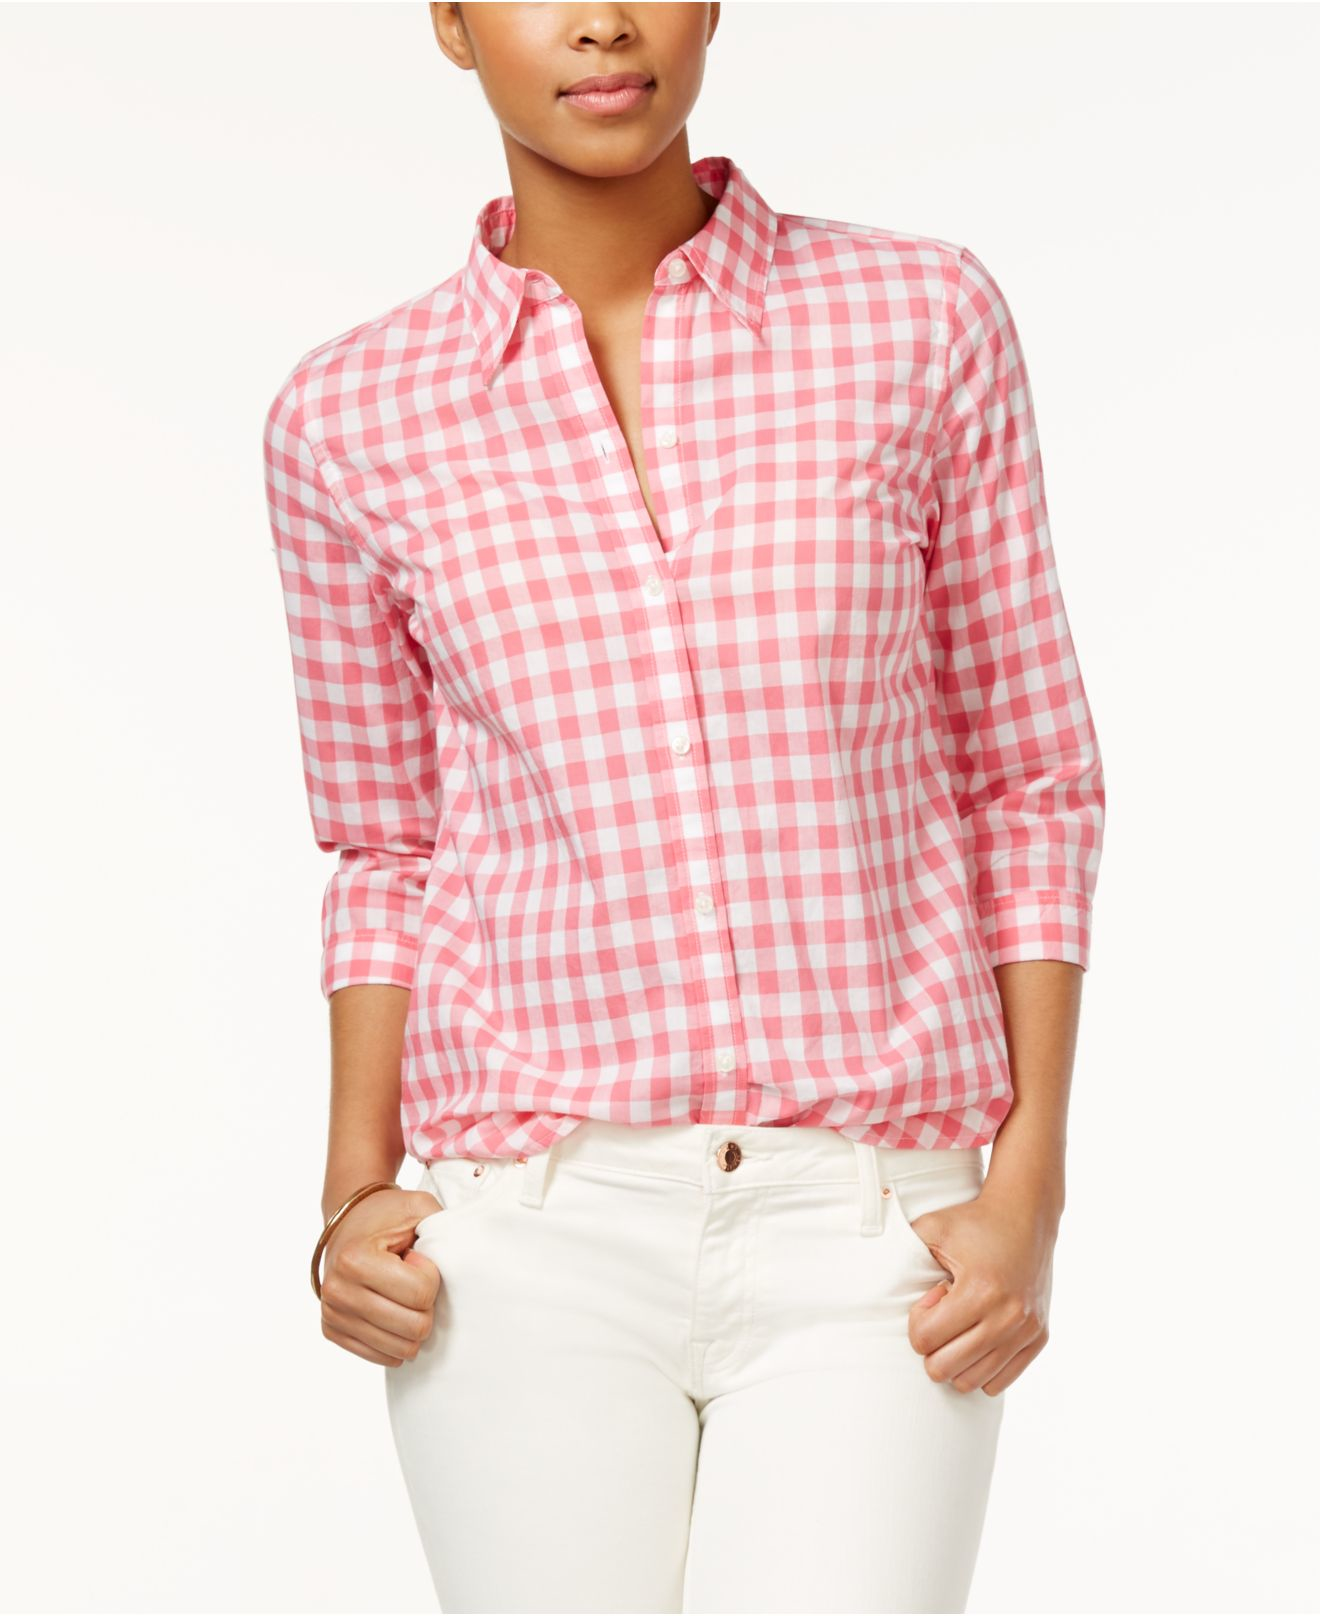 American Living Gingham Button Down Shirt In Pink Lyst